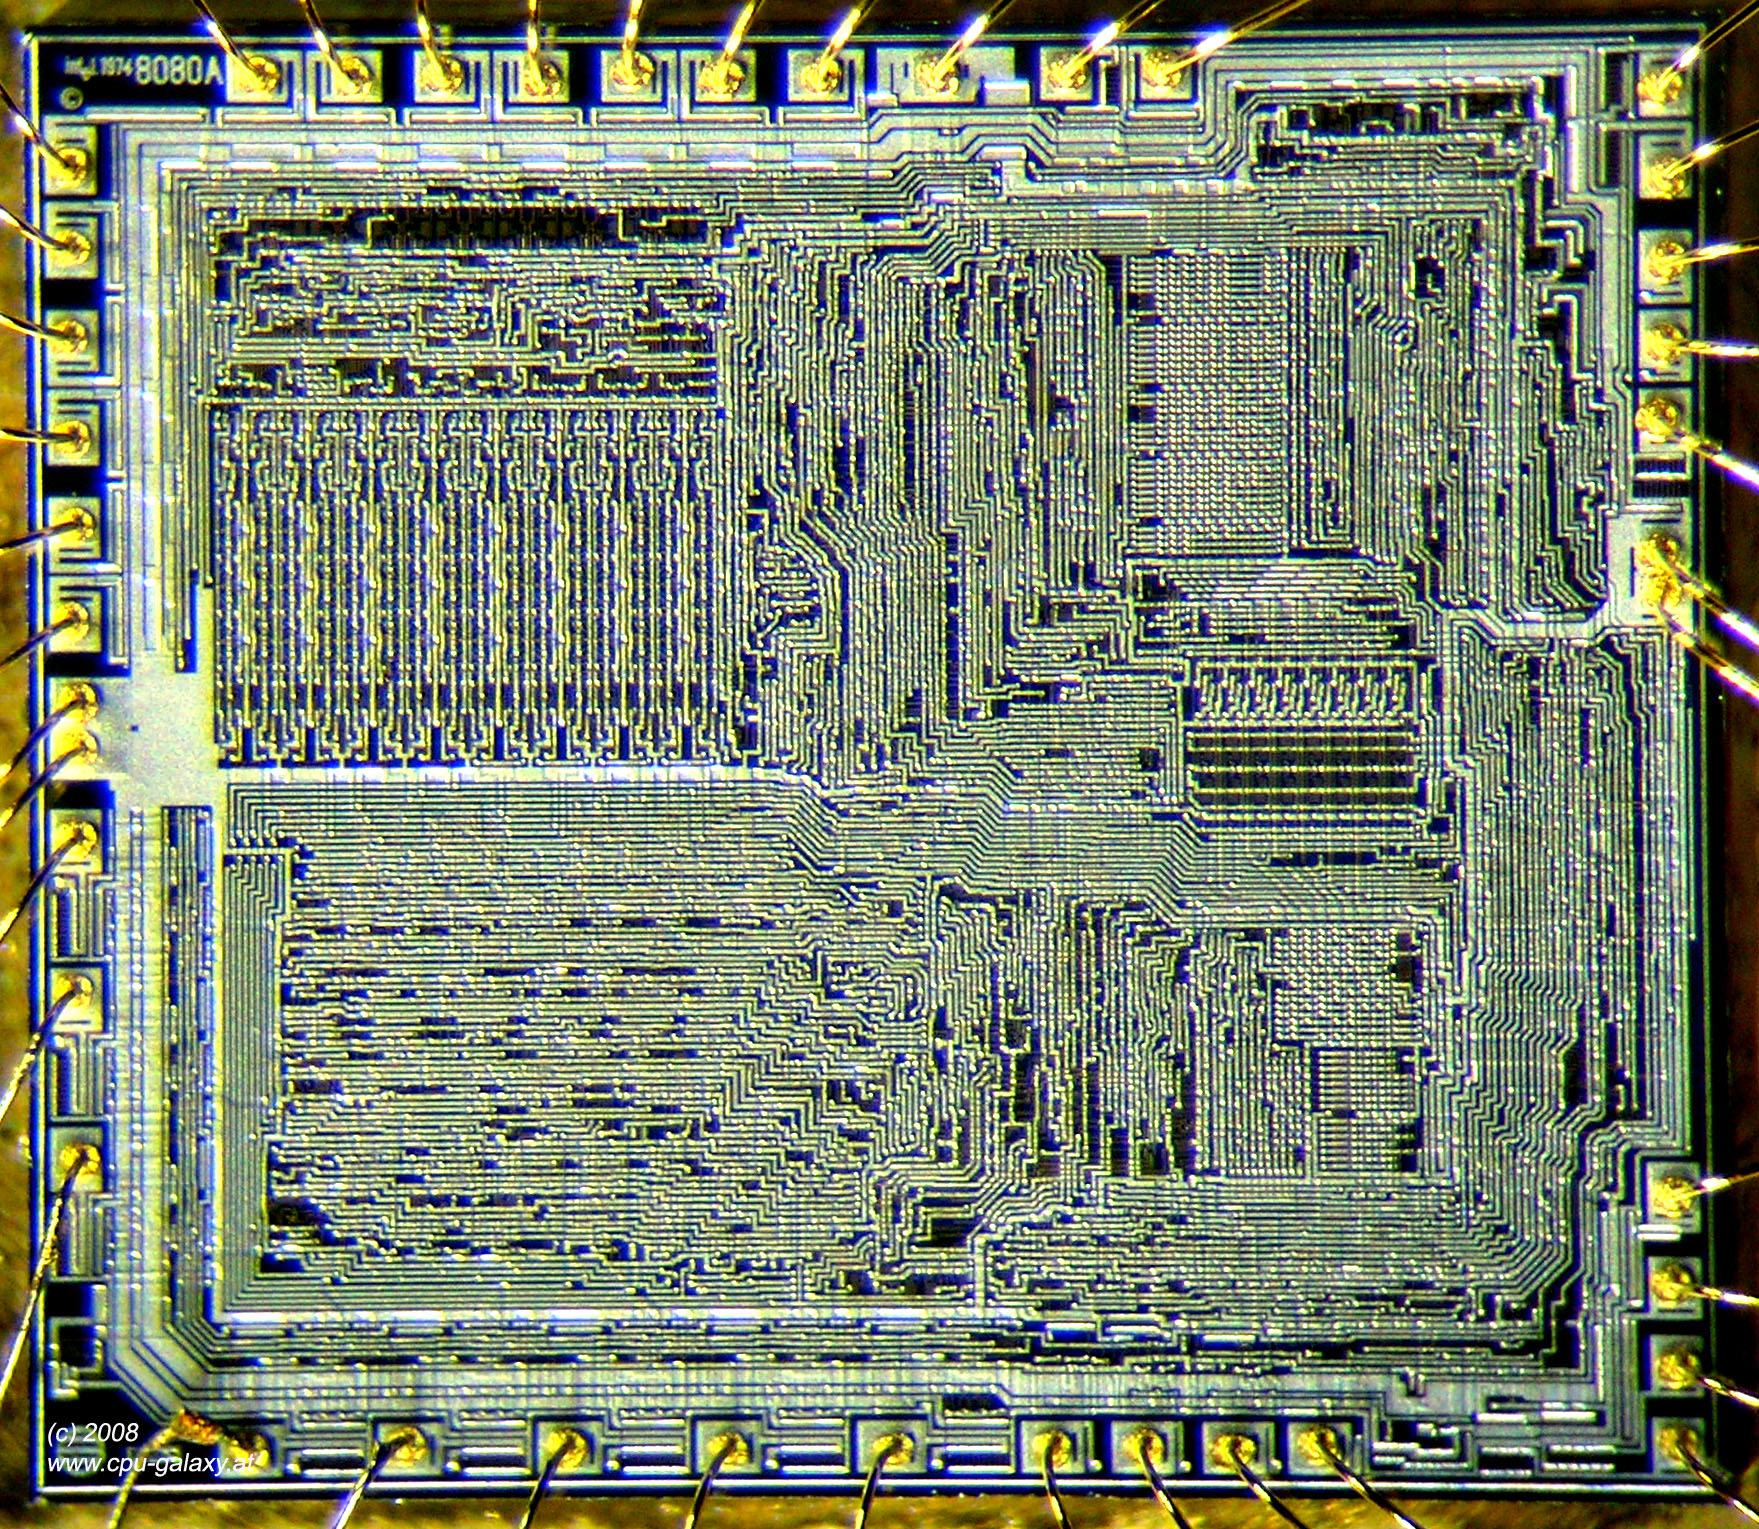 microprocessor technology Fpga vs microprocessor field programmable gate arrays or fpgas were once simple blocks of gates that can be configured by the user to implement the logic that he or she wants in comparison, a microprocessor is a simplified cpu or central processing unit it executes a program that contains a specific set of.